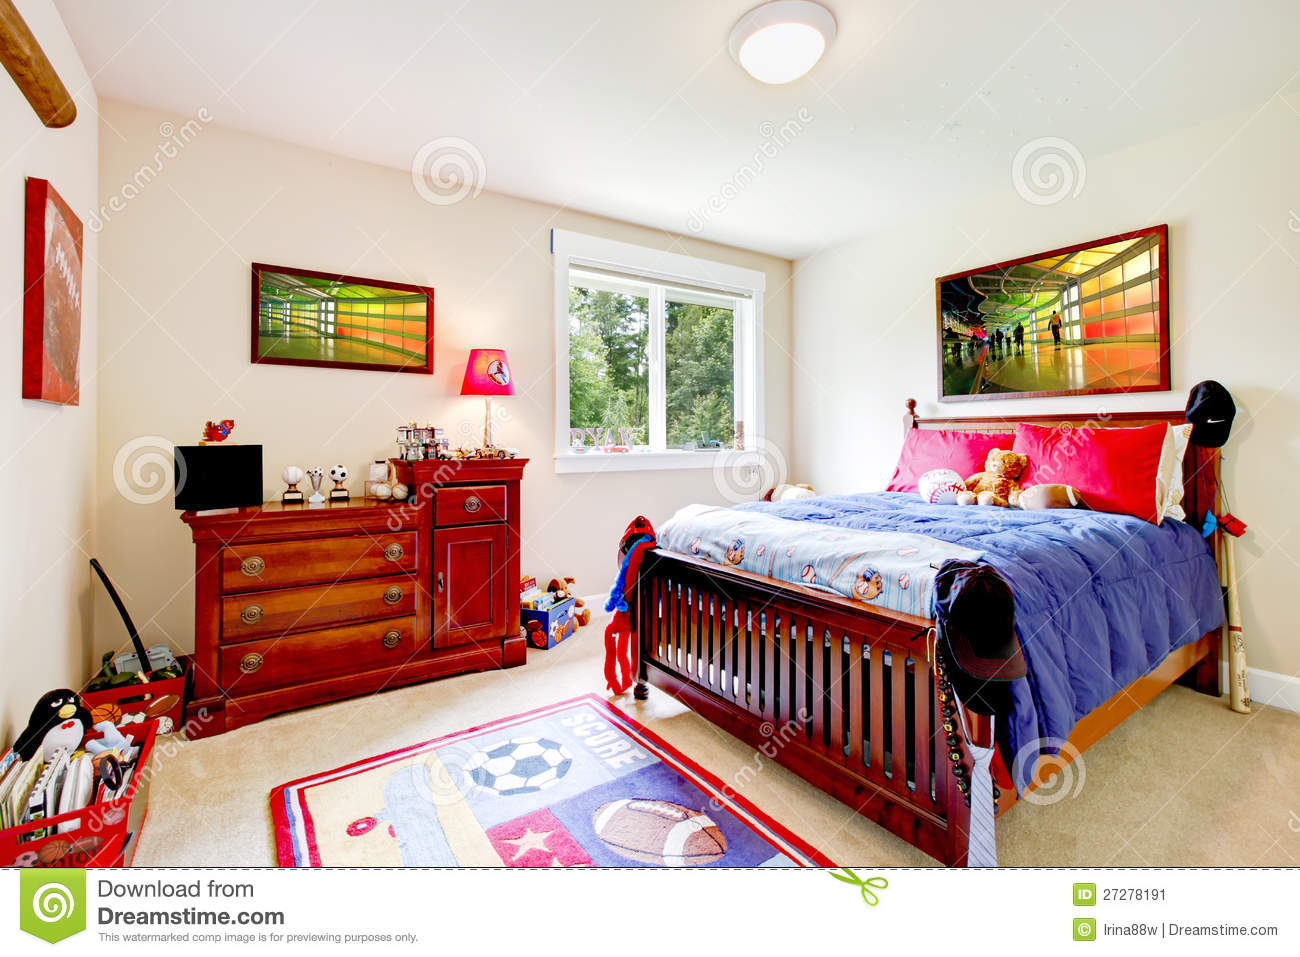 baby boy bedroom with wood furniture and colorful art with red and